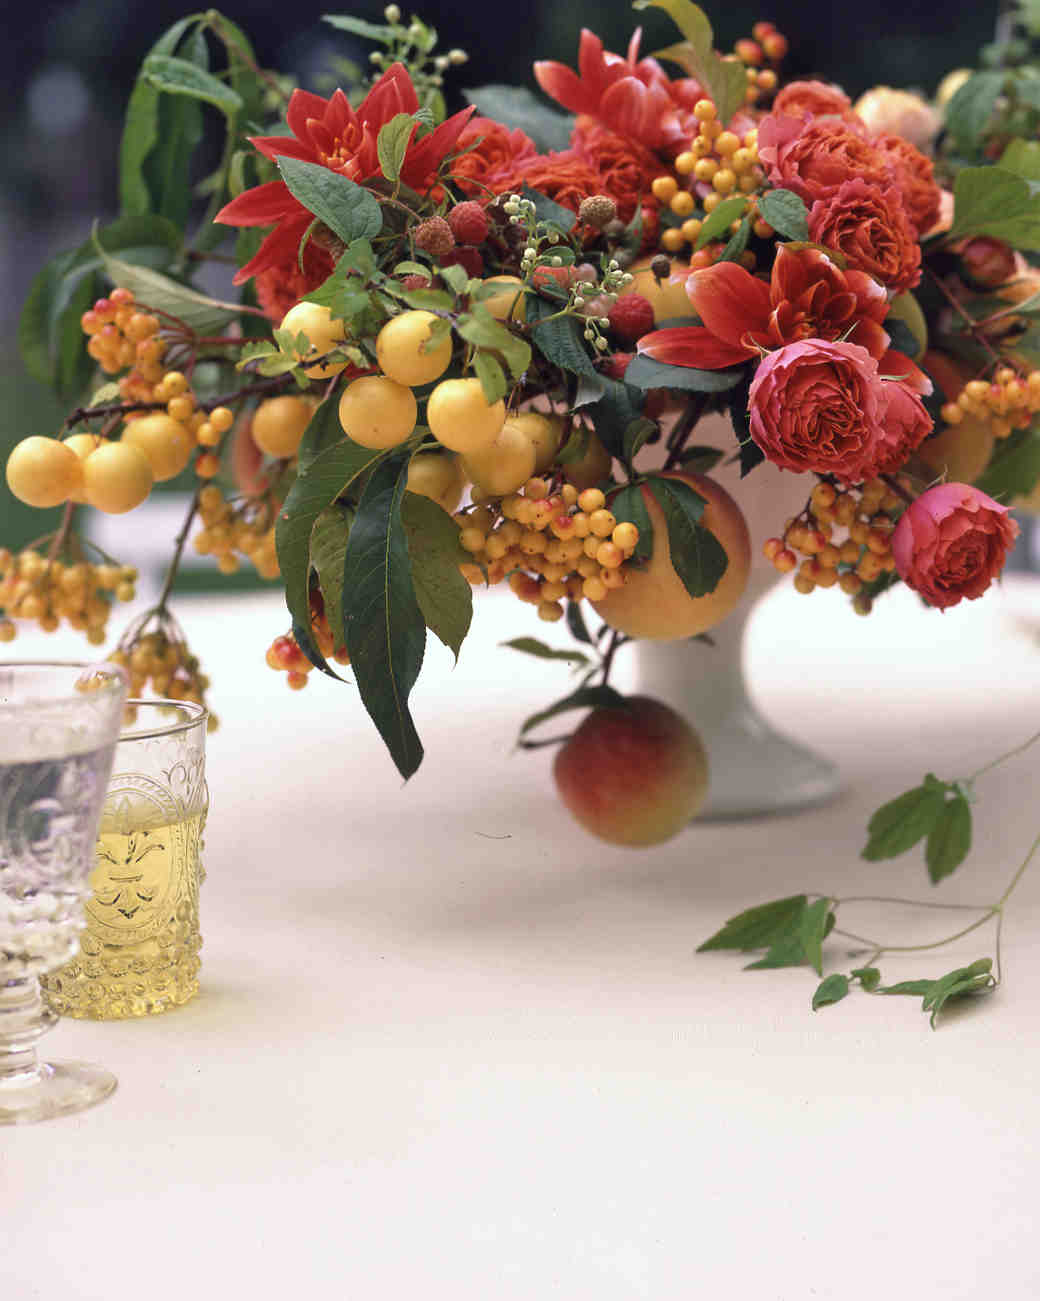 Lush Fruit and Flower Wedding Centerpiece